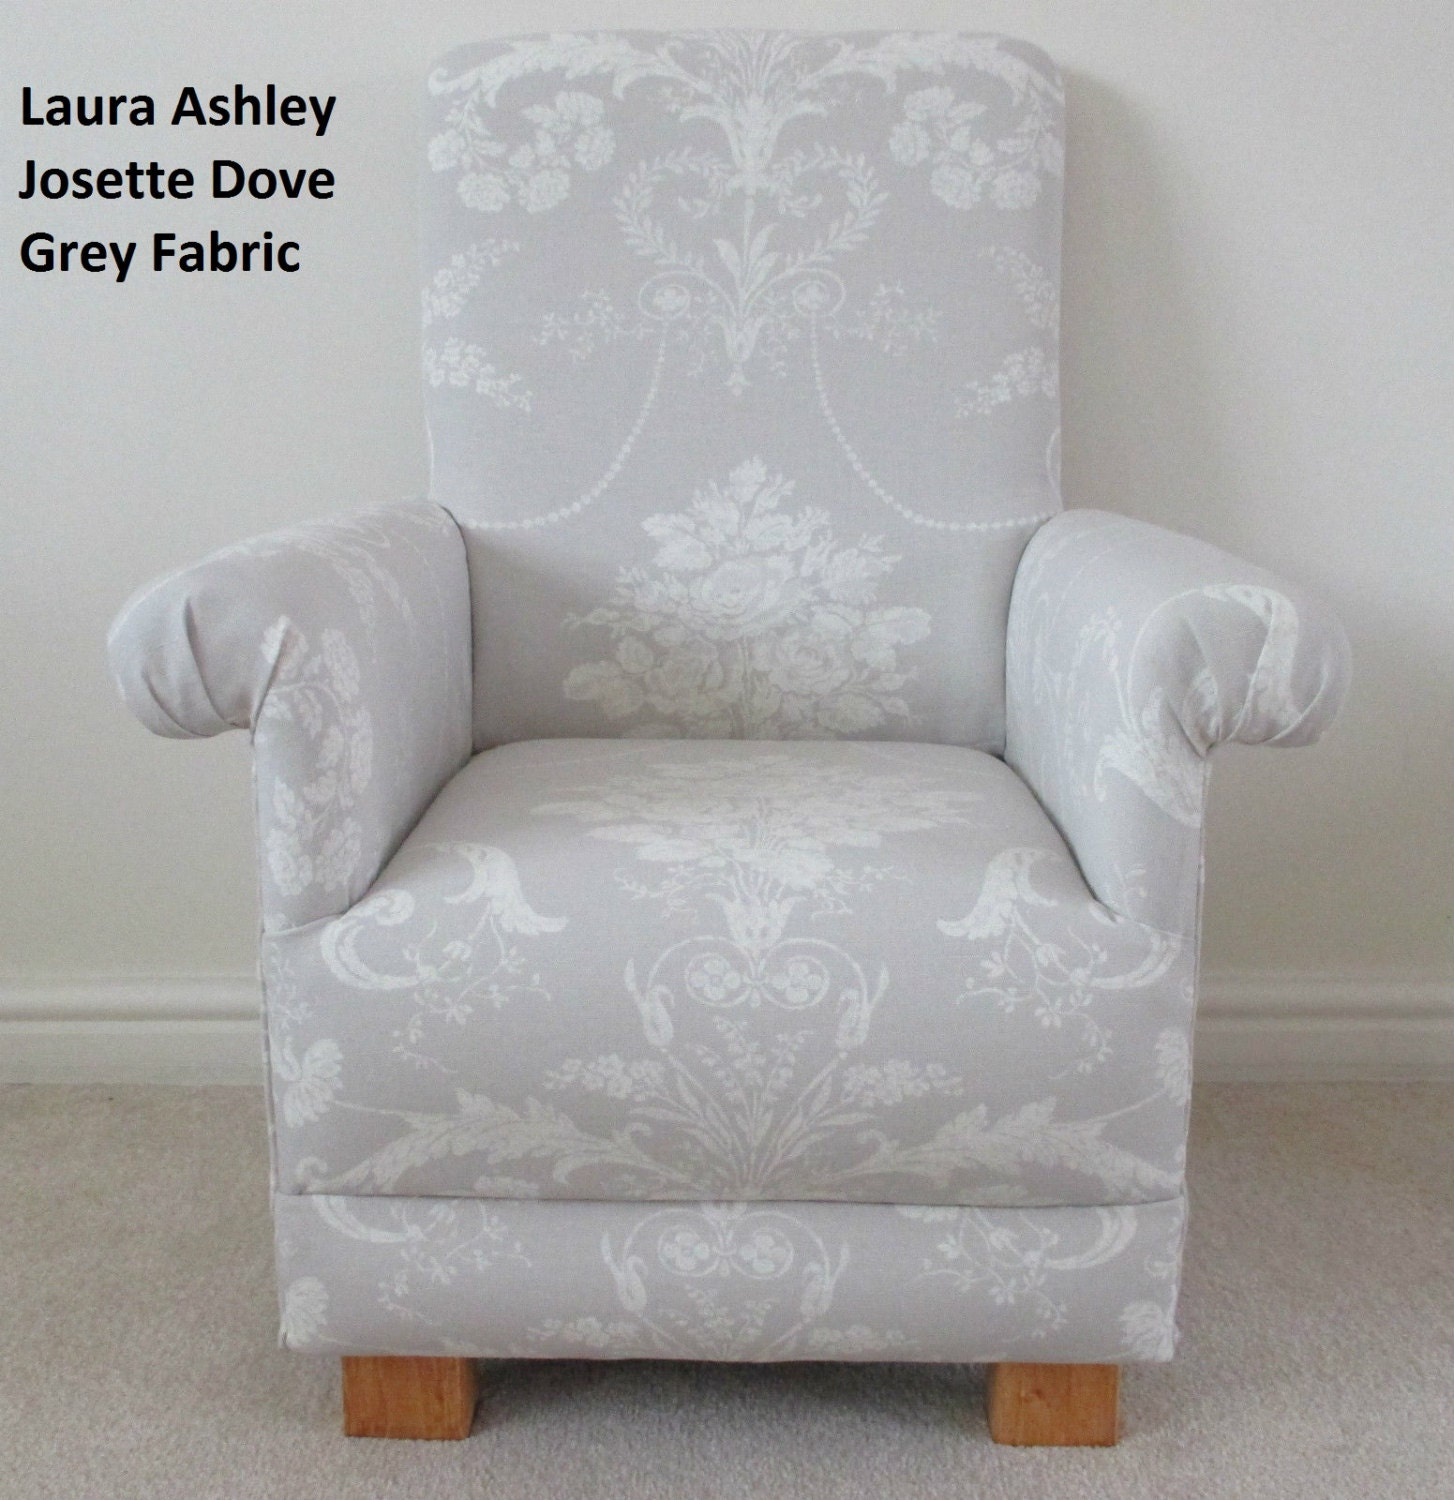 Laura ashley dove grey josette fabric kids chair nursery for Grey childrens chair